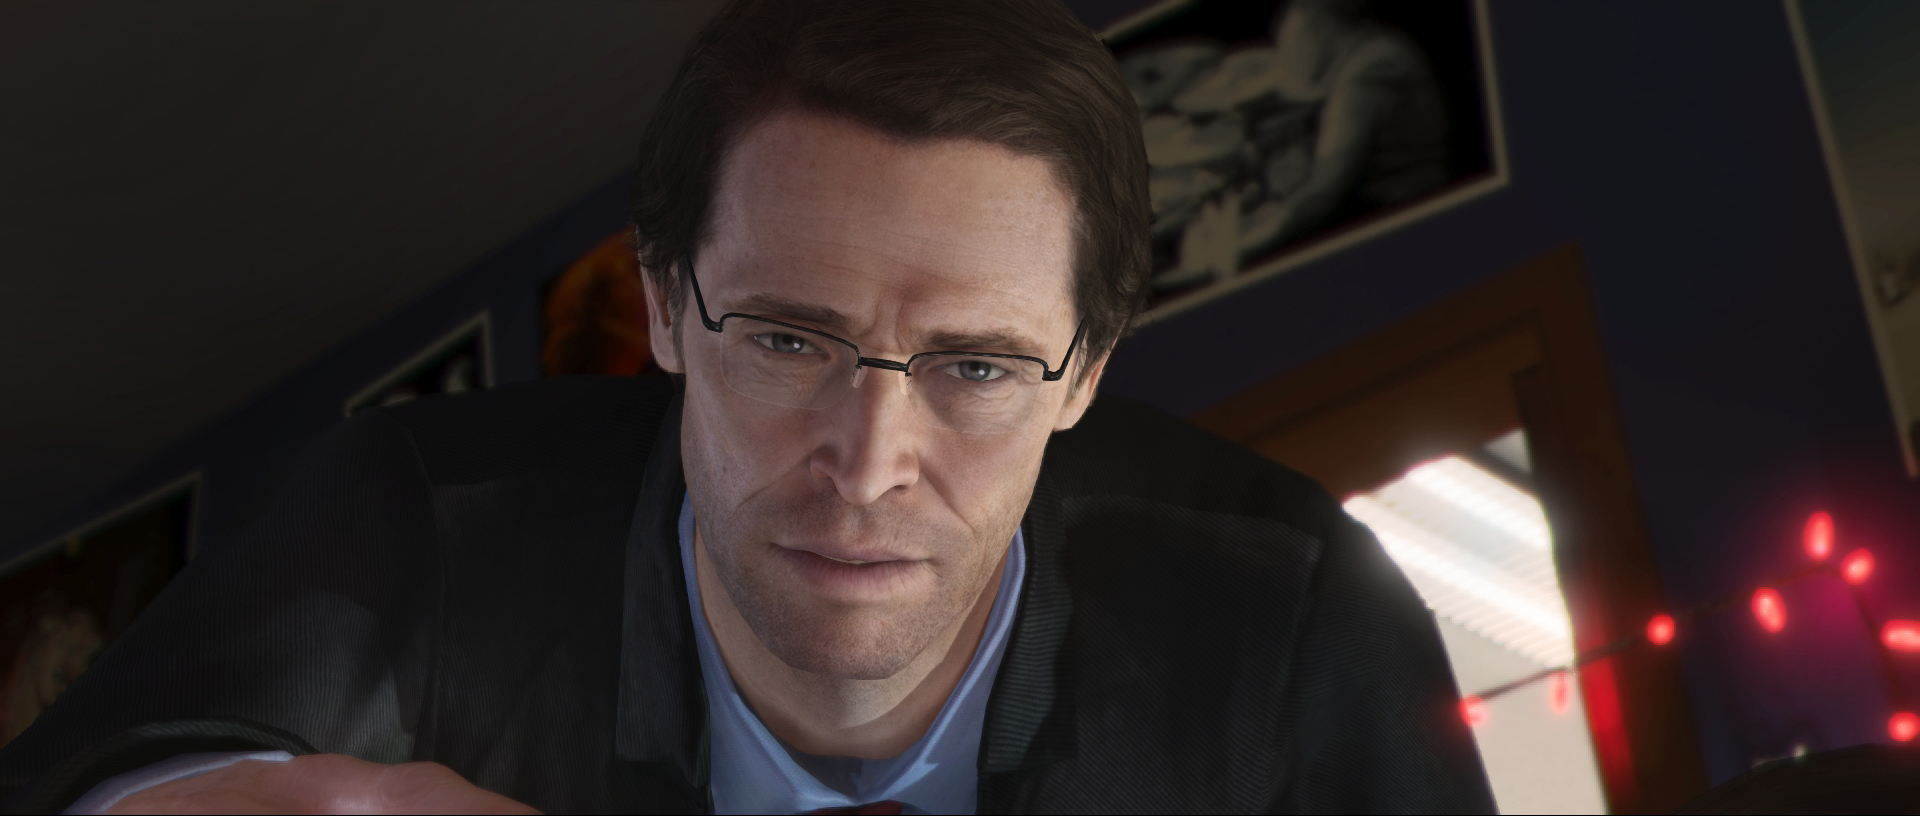 Beyond Two Souls - Willem Dafoe